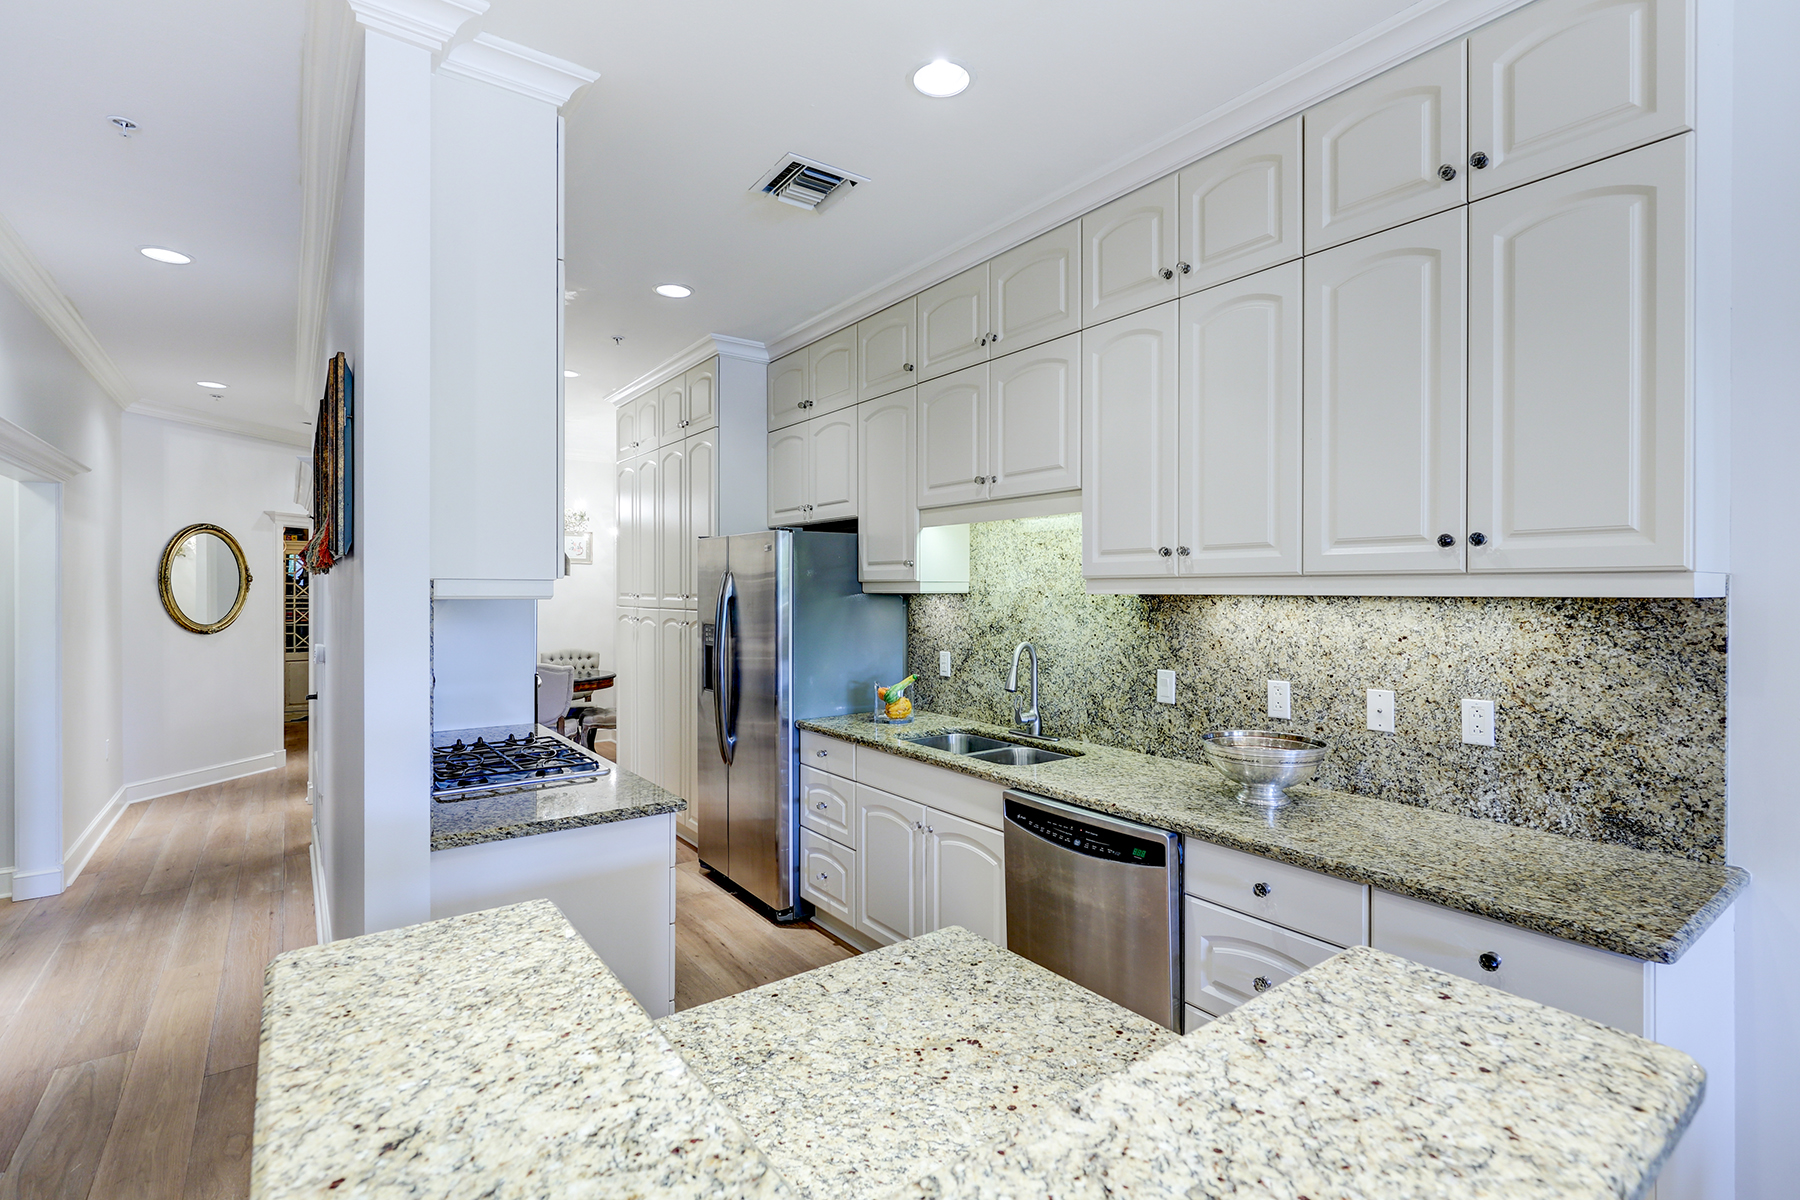 Additional photo for property listing at OLDE NAPLES - 555 ON FIFTH 555  5th Ave  S 201,  Naples, Florida 34102 United States